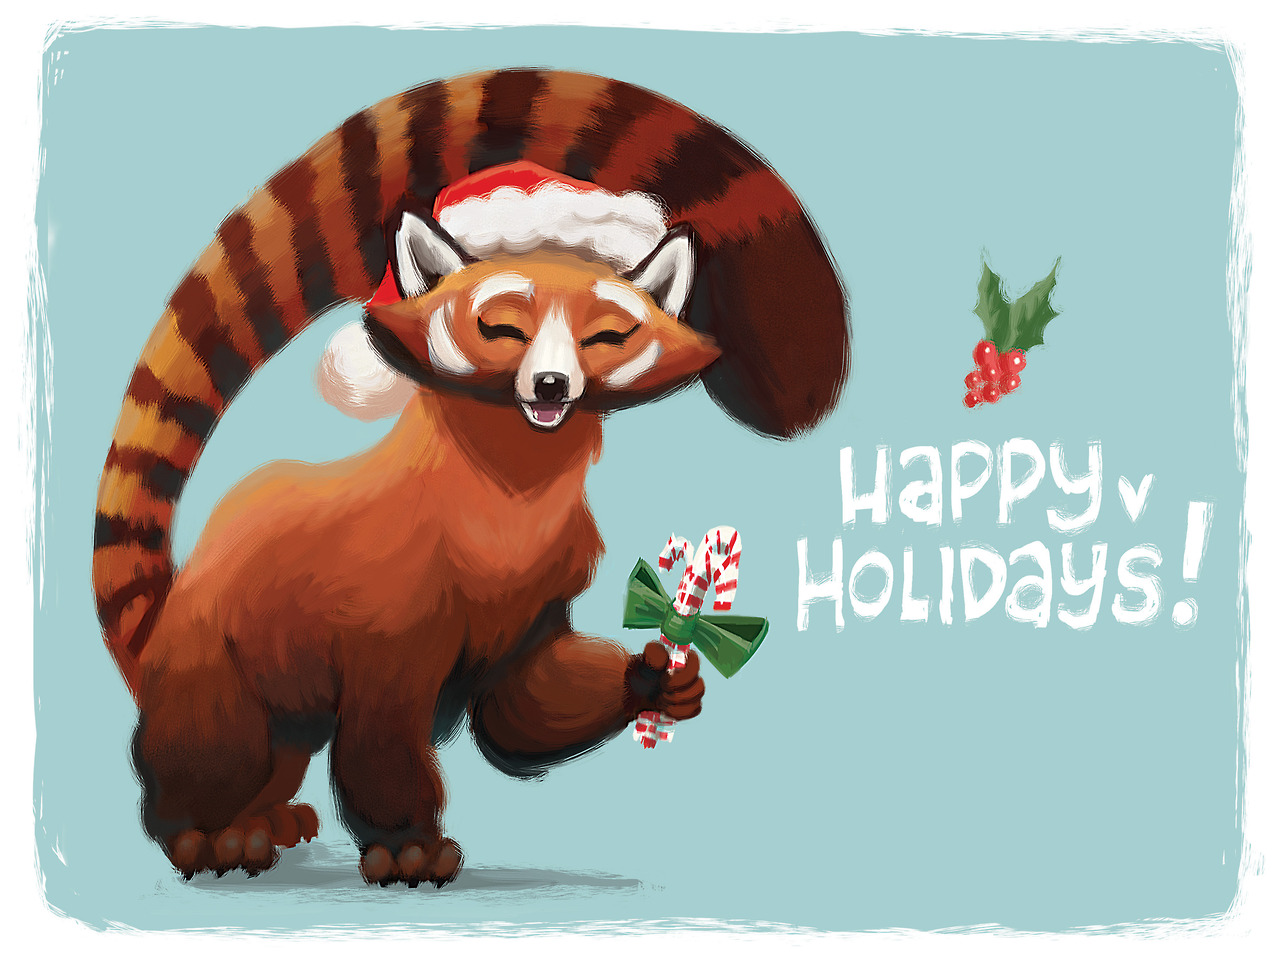 have a happy holiday everyone!!